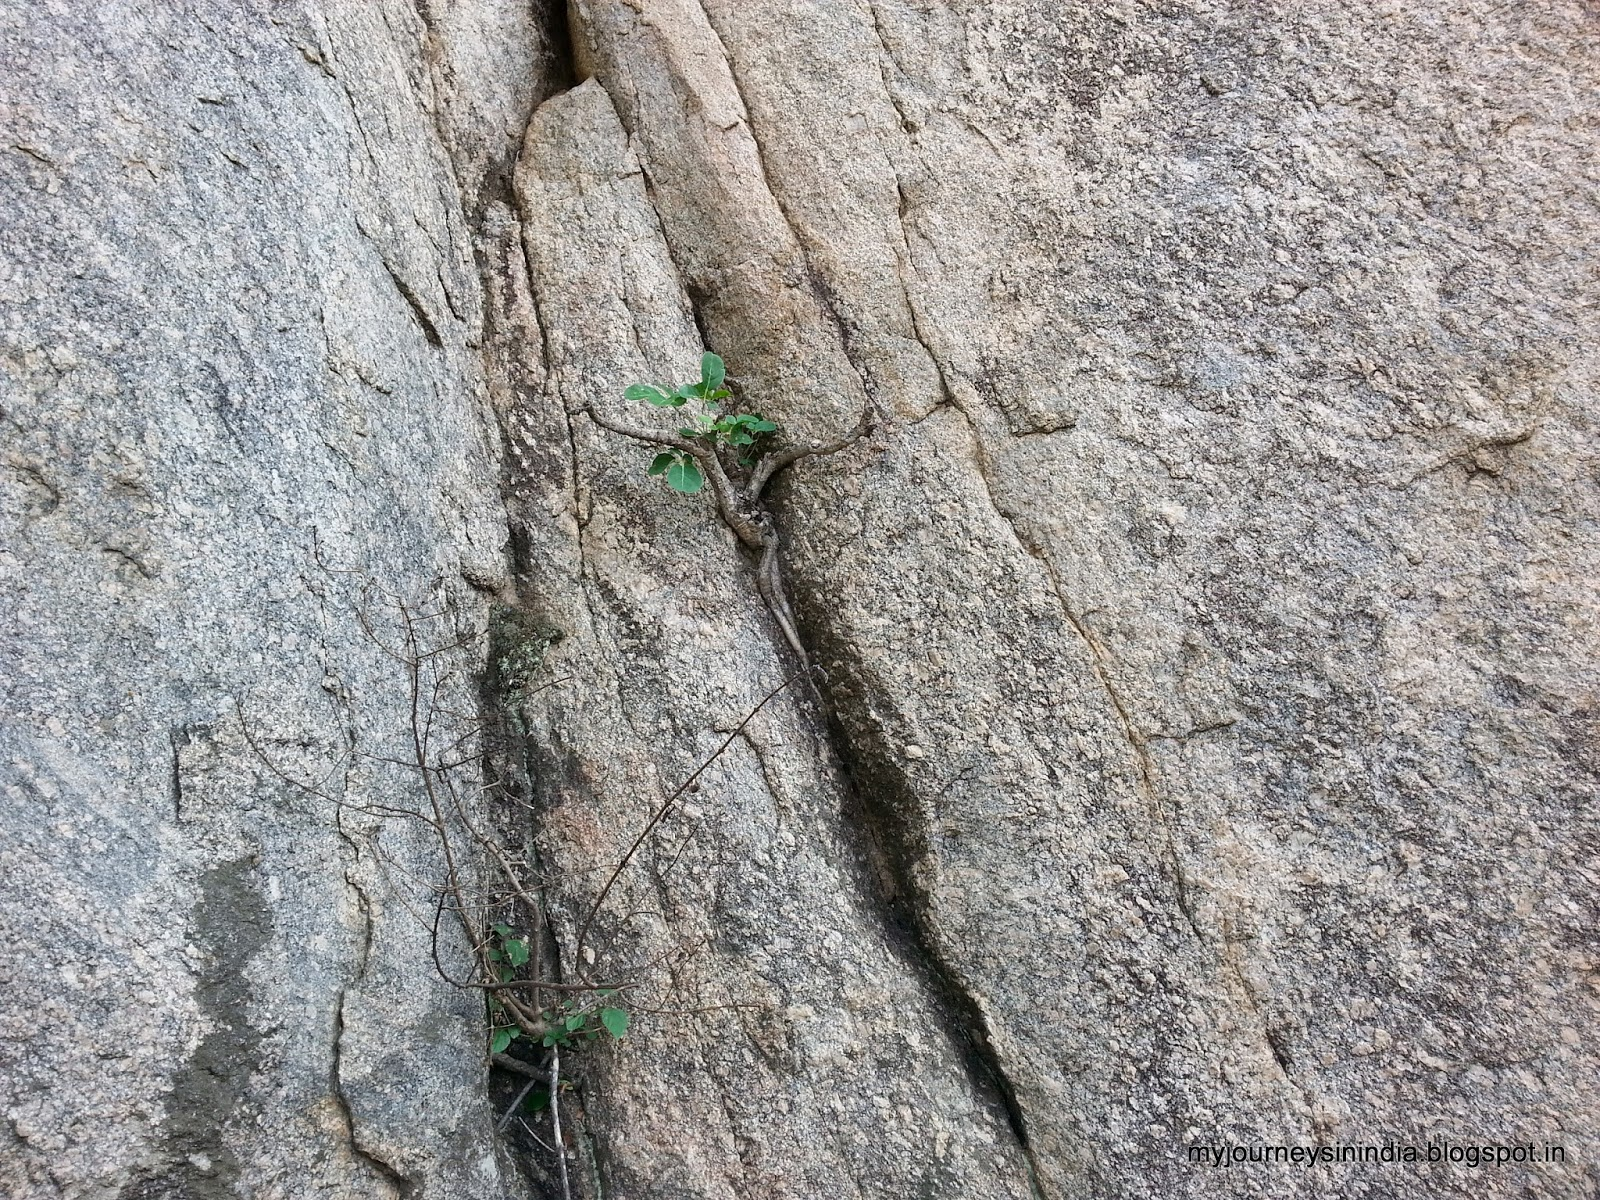 Trees growing on rocks - Devarayanadurga